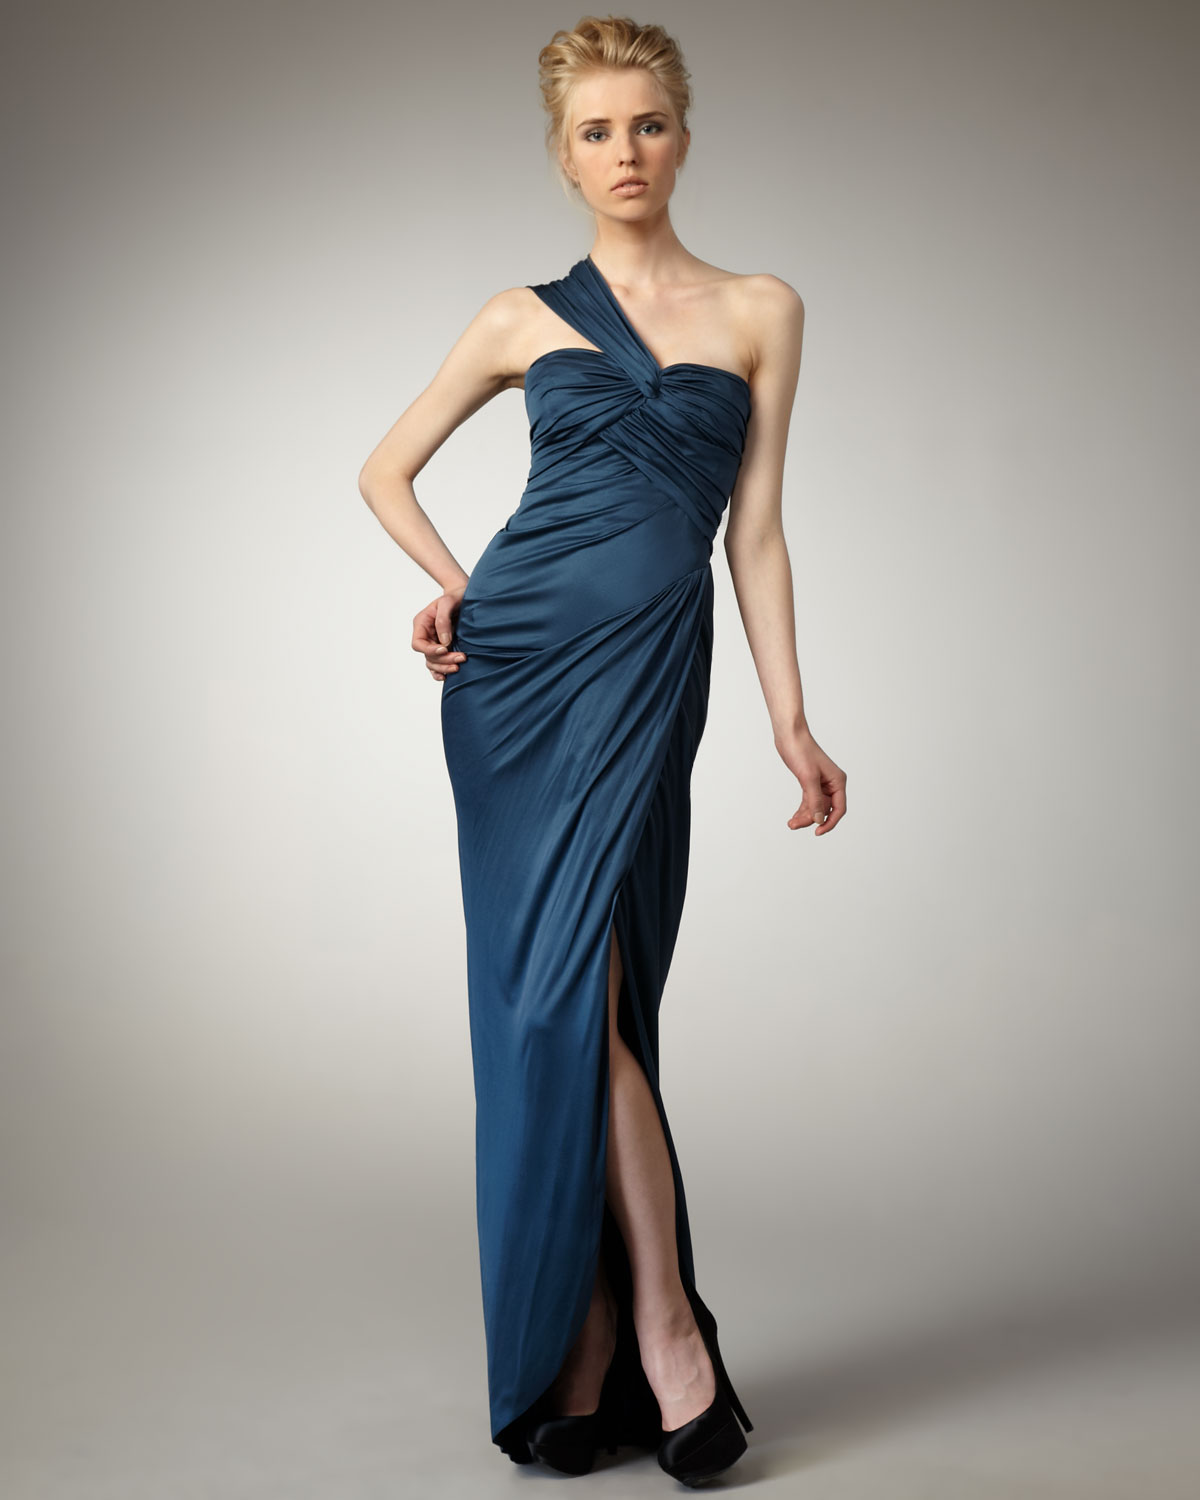 Lyst - Vera Wang Lavender One-shoulder Jersey Gown in Blue